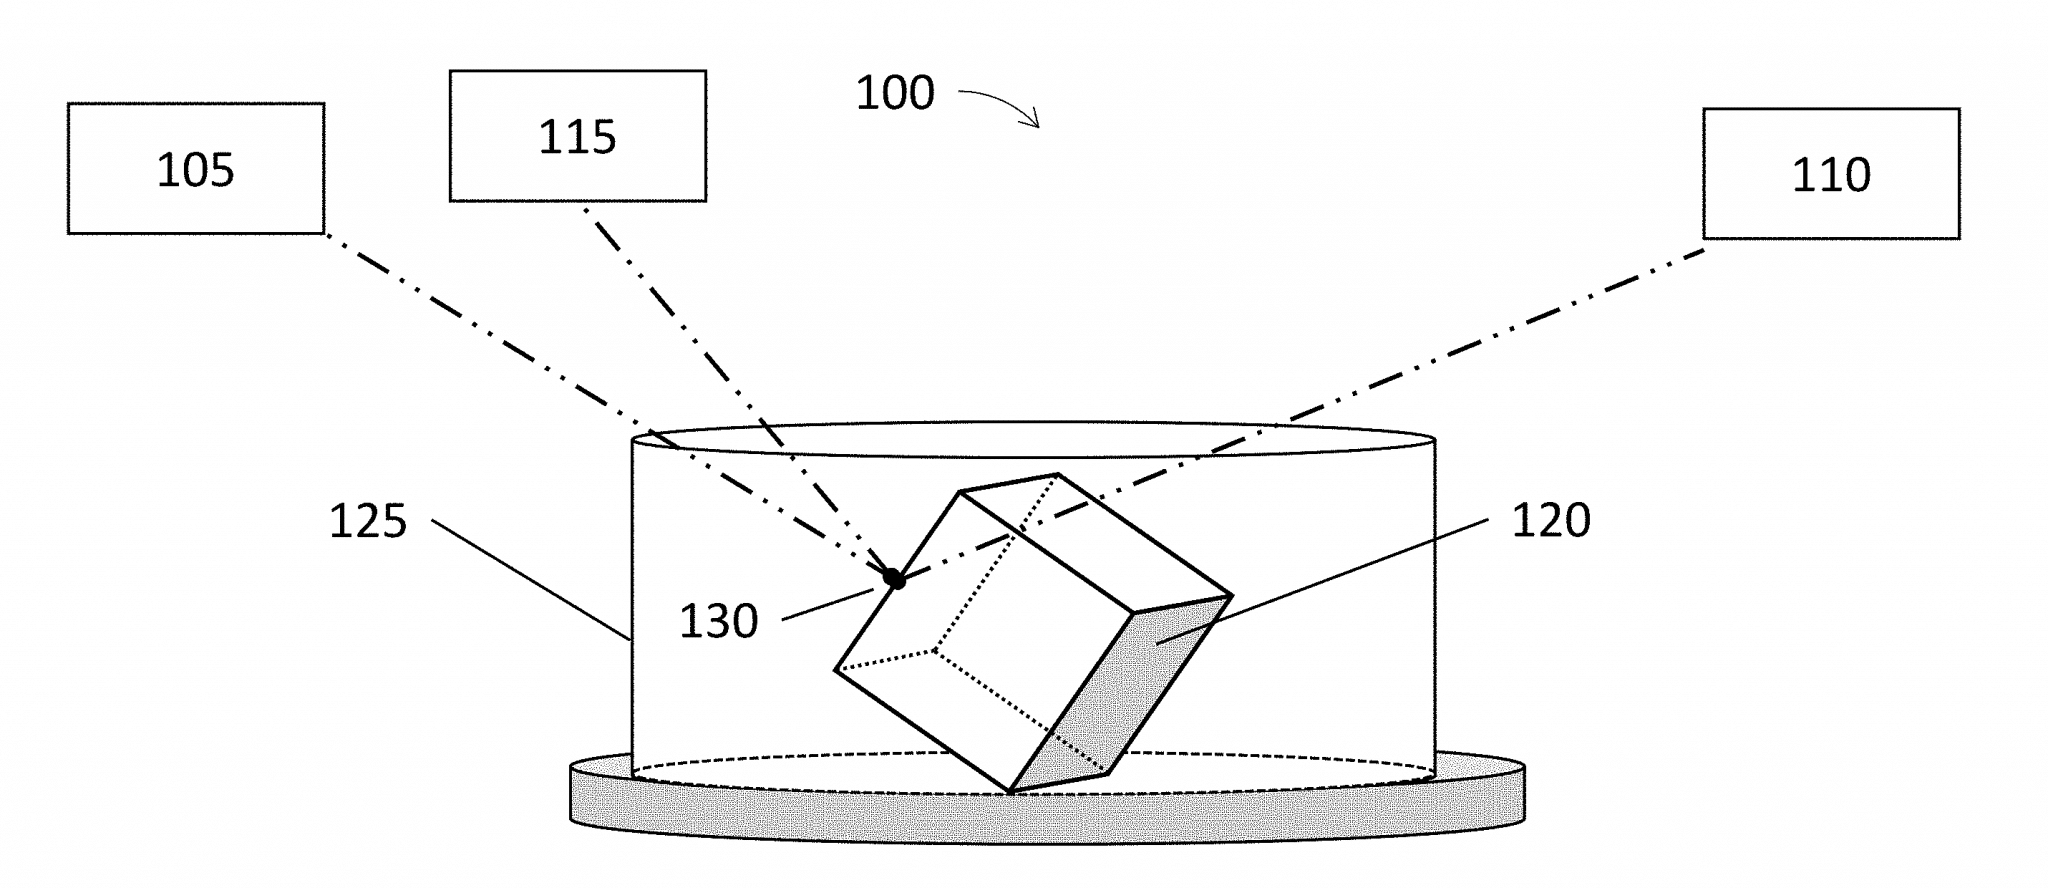 A schematic filed with Mr. Clark's volumetric printing patent